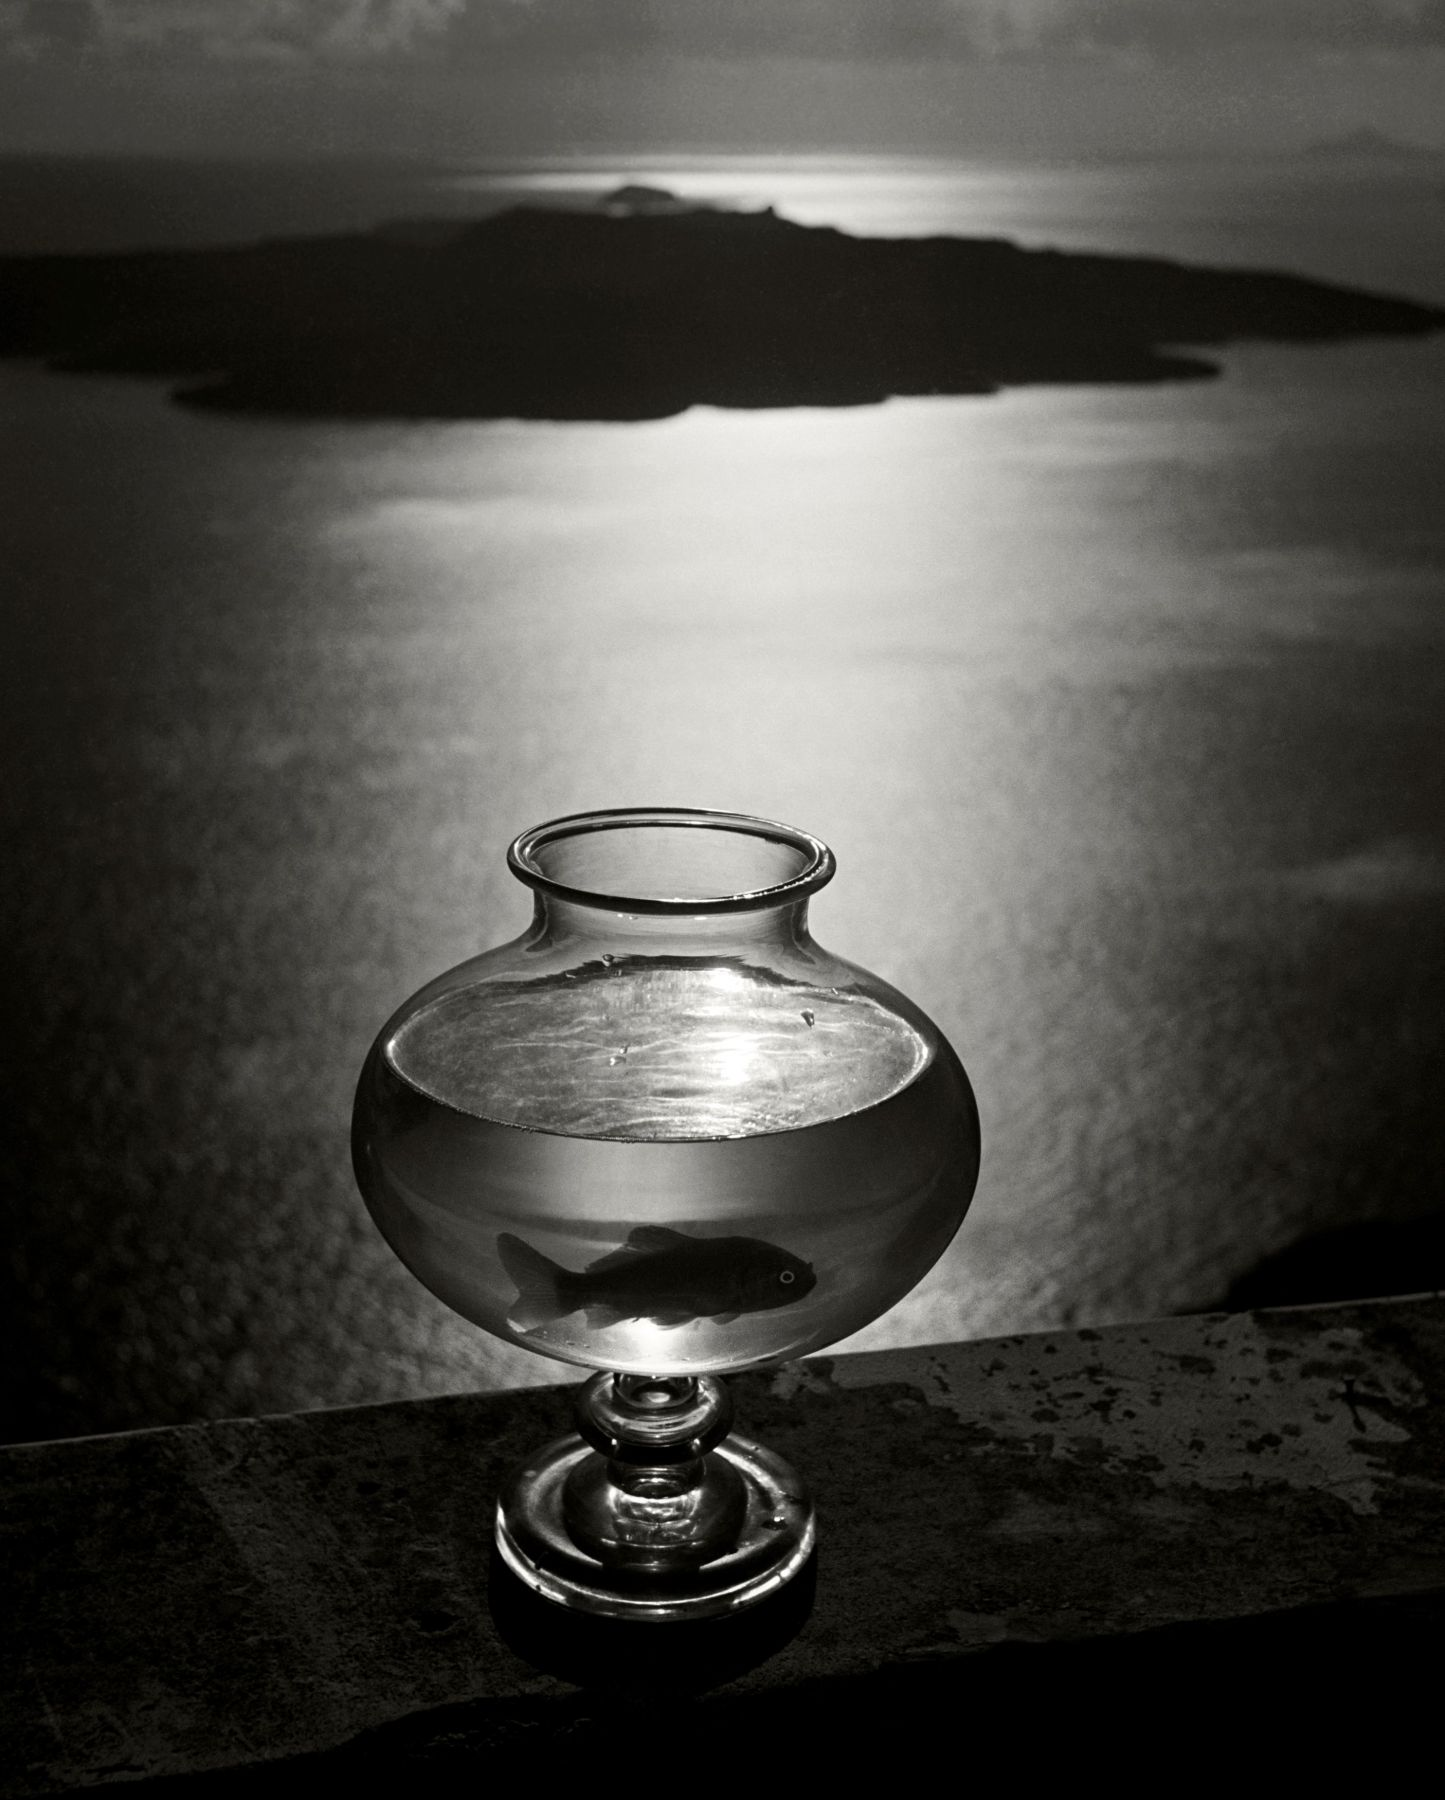 Herbert List Goldfish Bowl, Santorini, Greece, 1937    Digital Silver Gelatin Photograph, Ed. 4/15 23 1/4 x 19 1/8 in. Estate stamped, Signed by Estate Executor, titled, dated, numbered verso